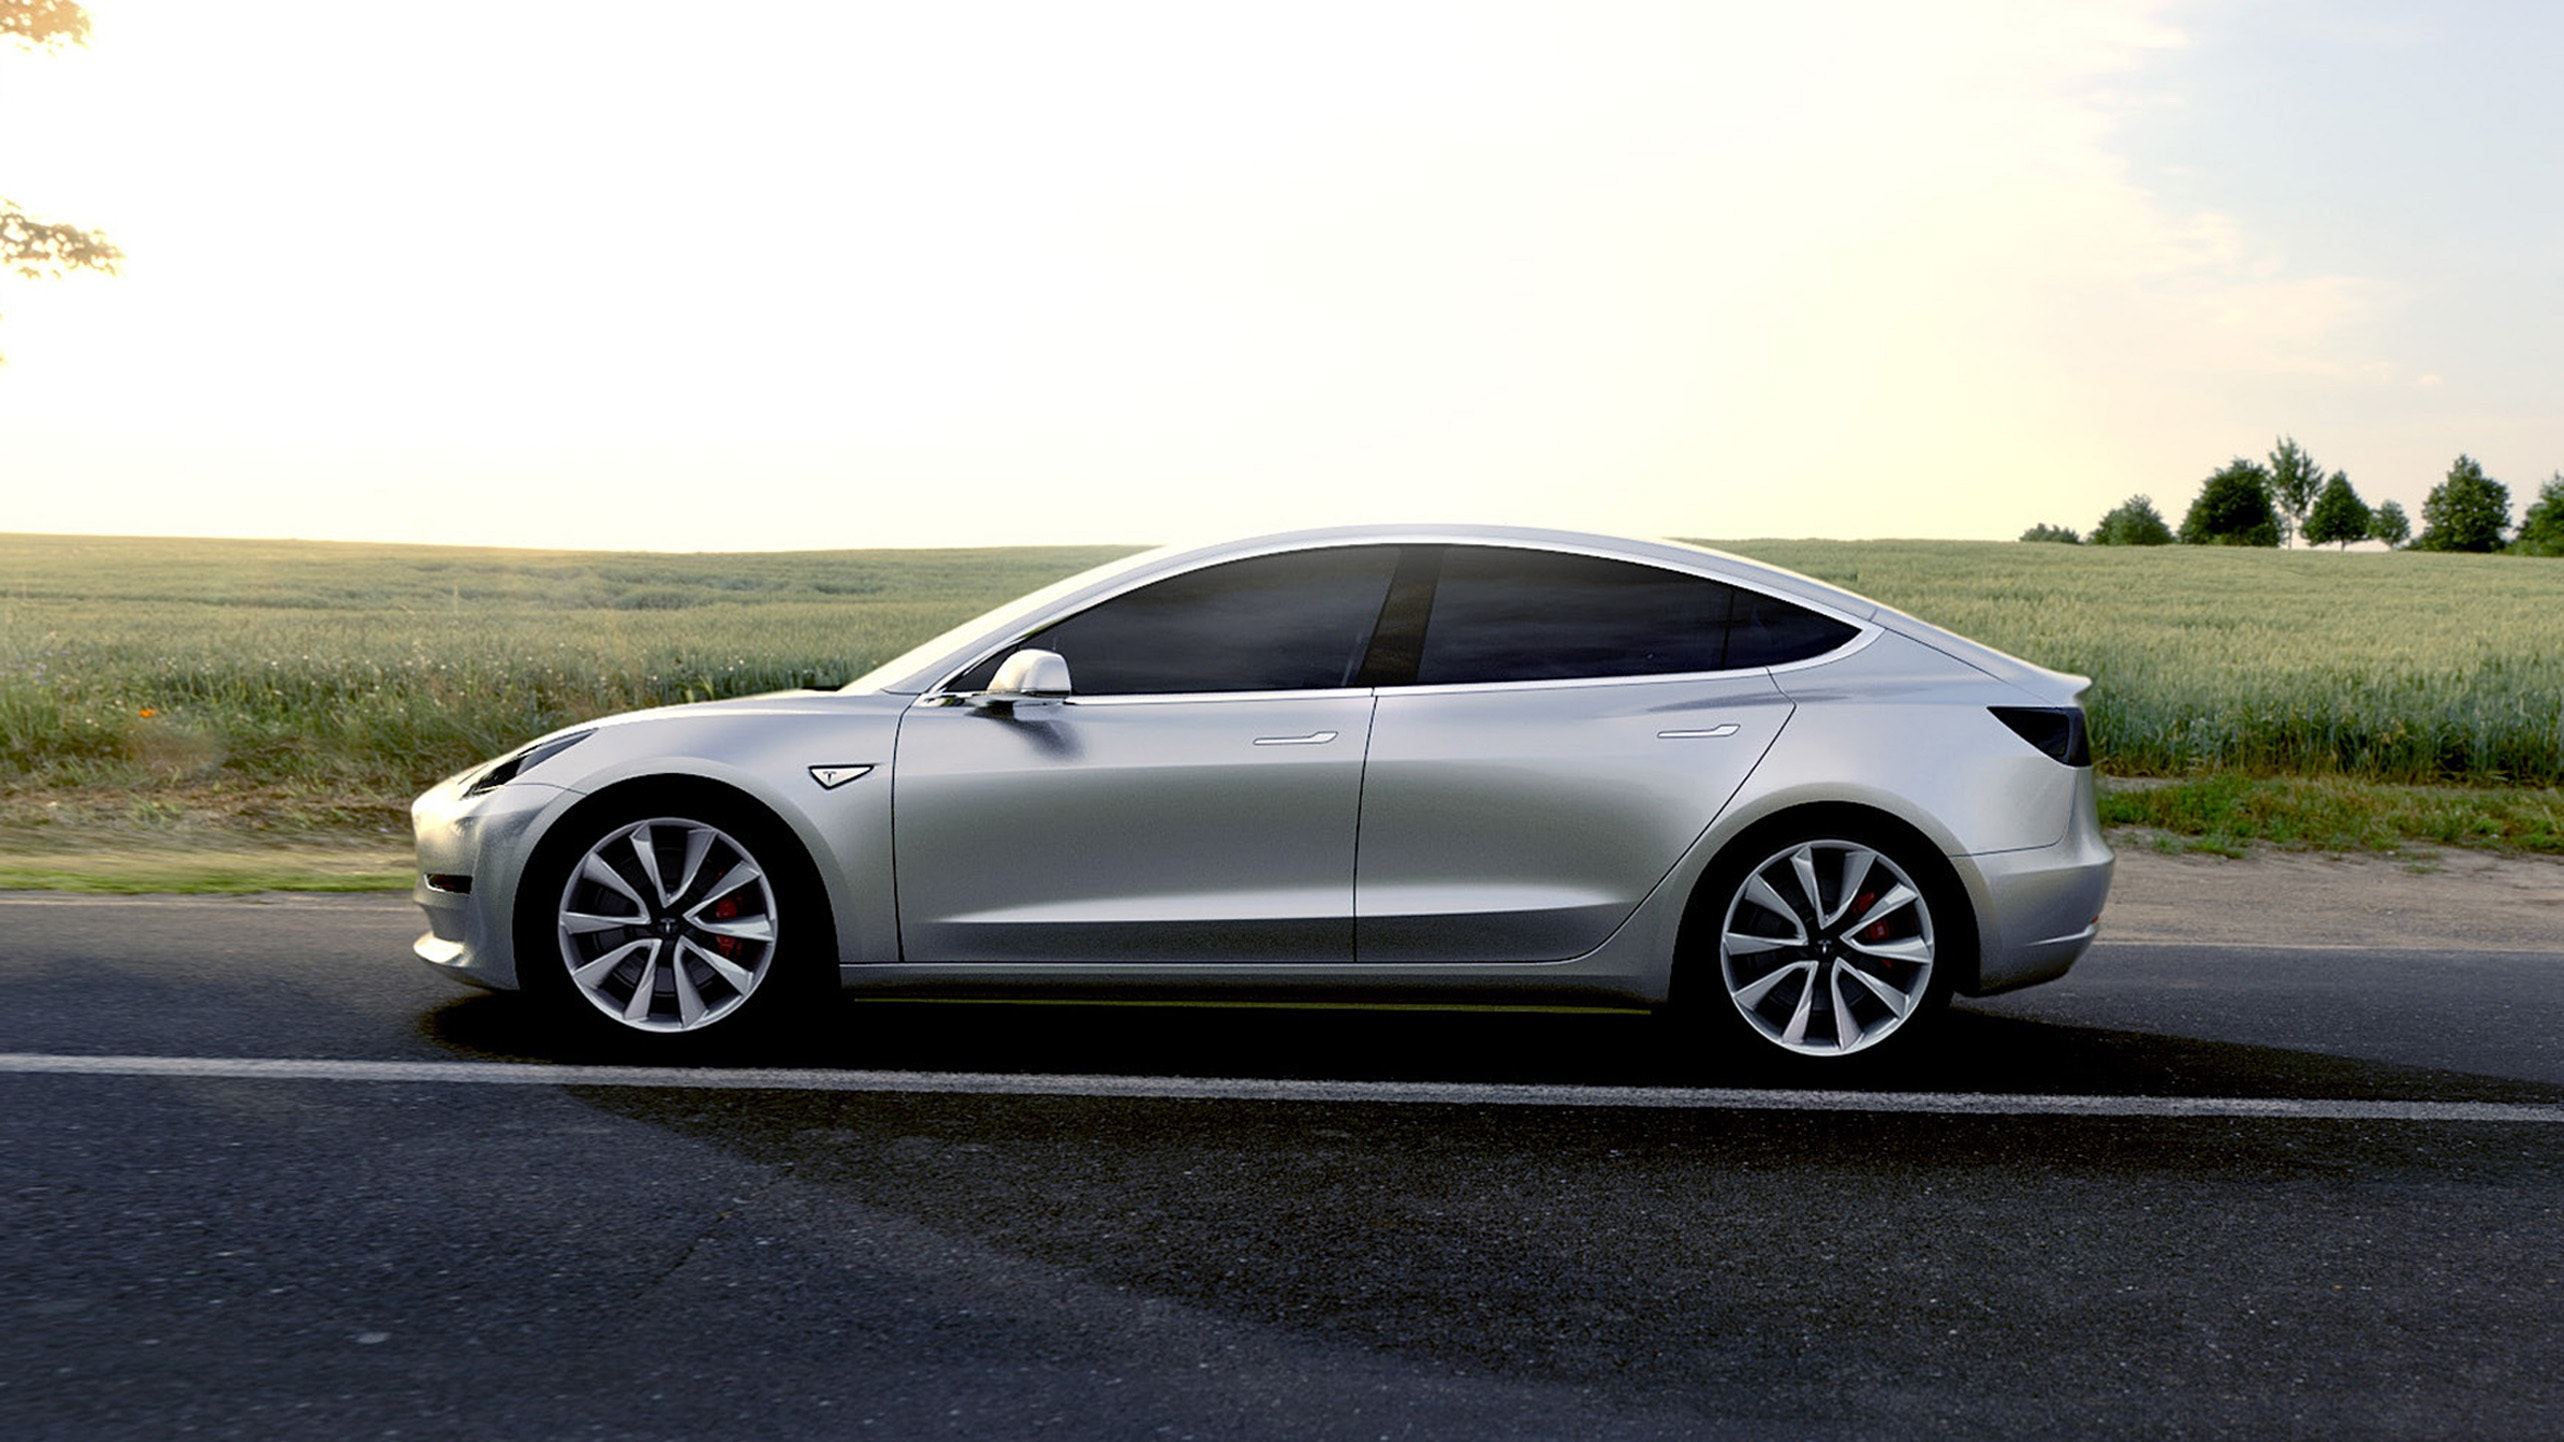 Tesla Model 3 All Wheel Drive Production Could Start In July According To Elon Musk